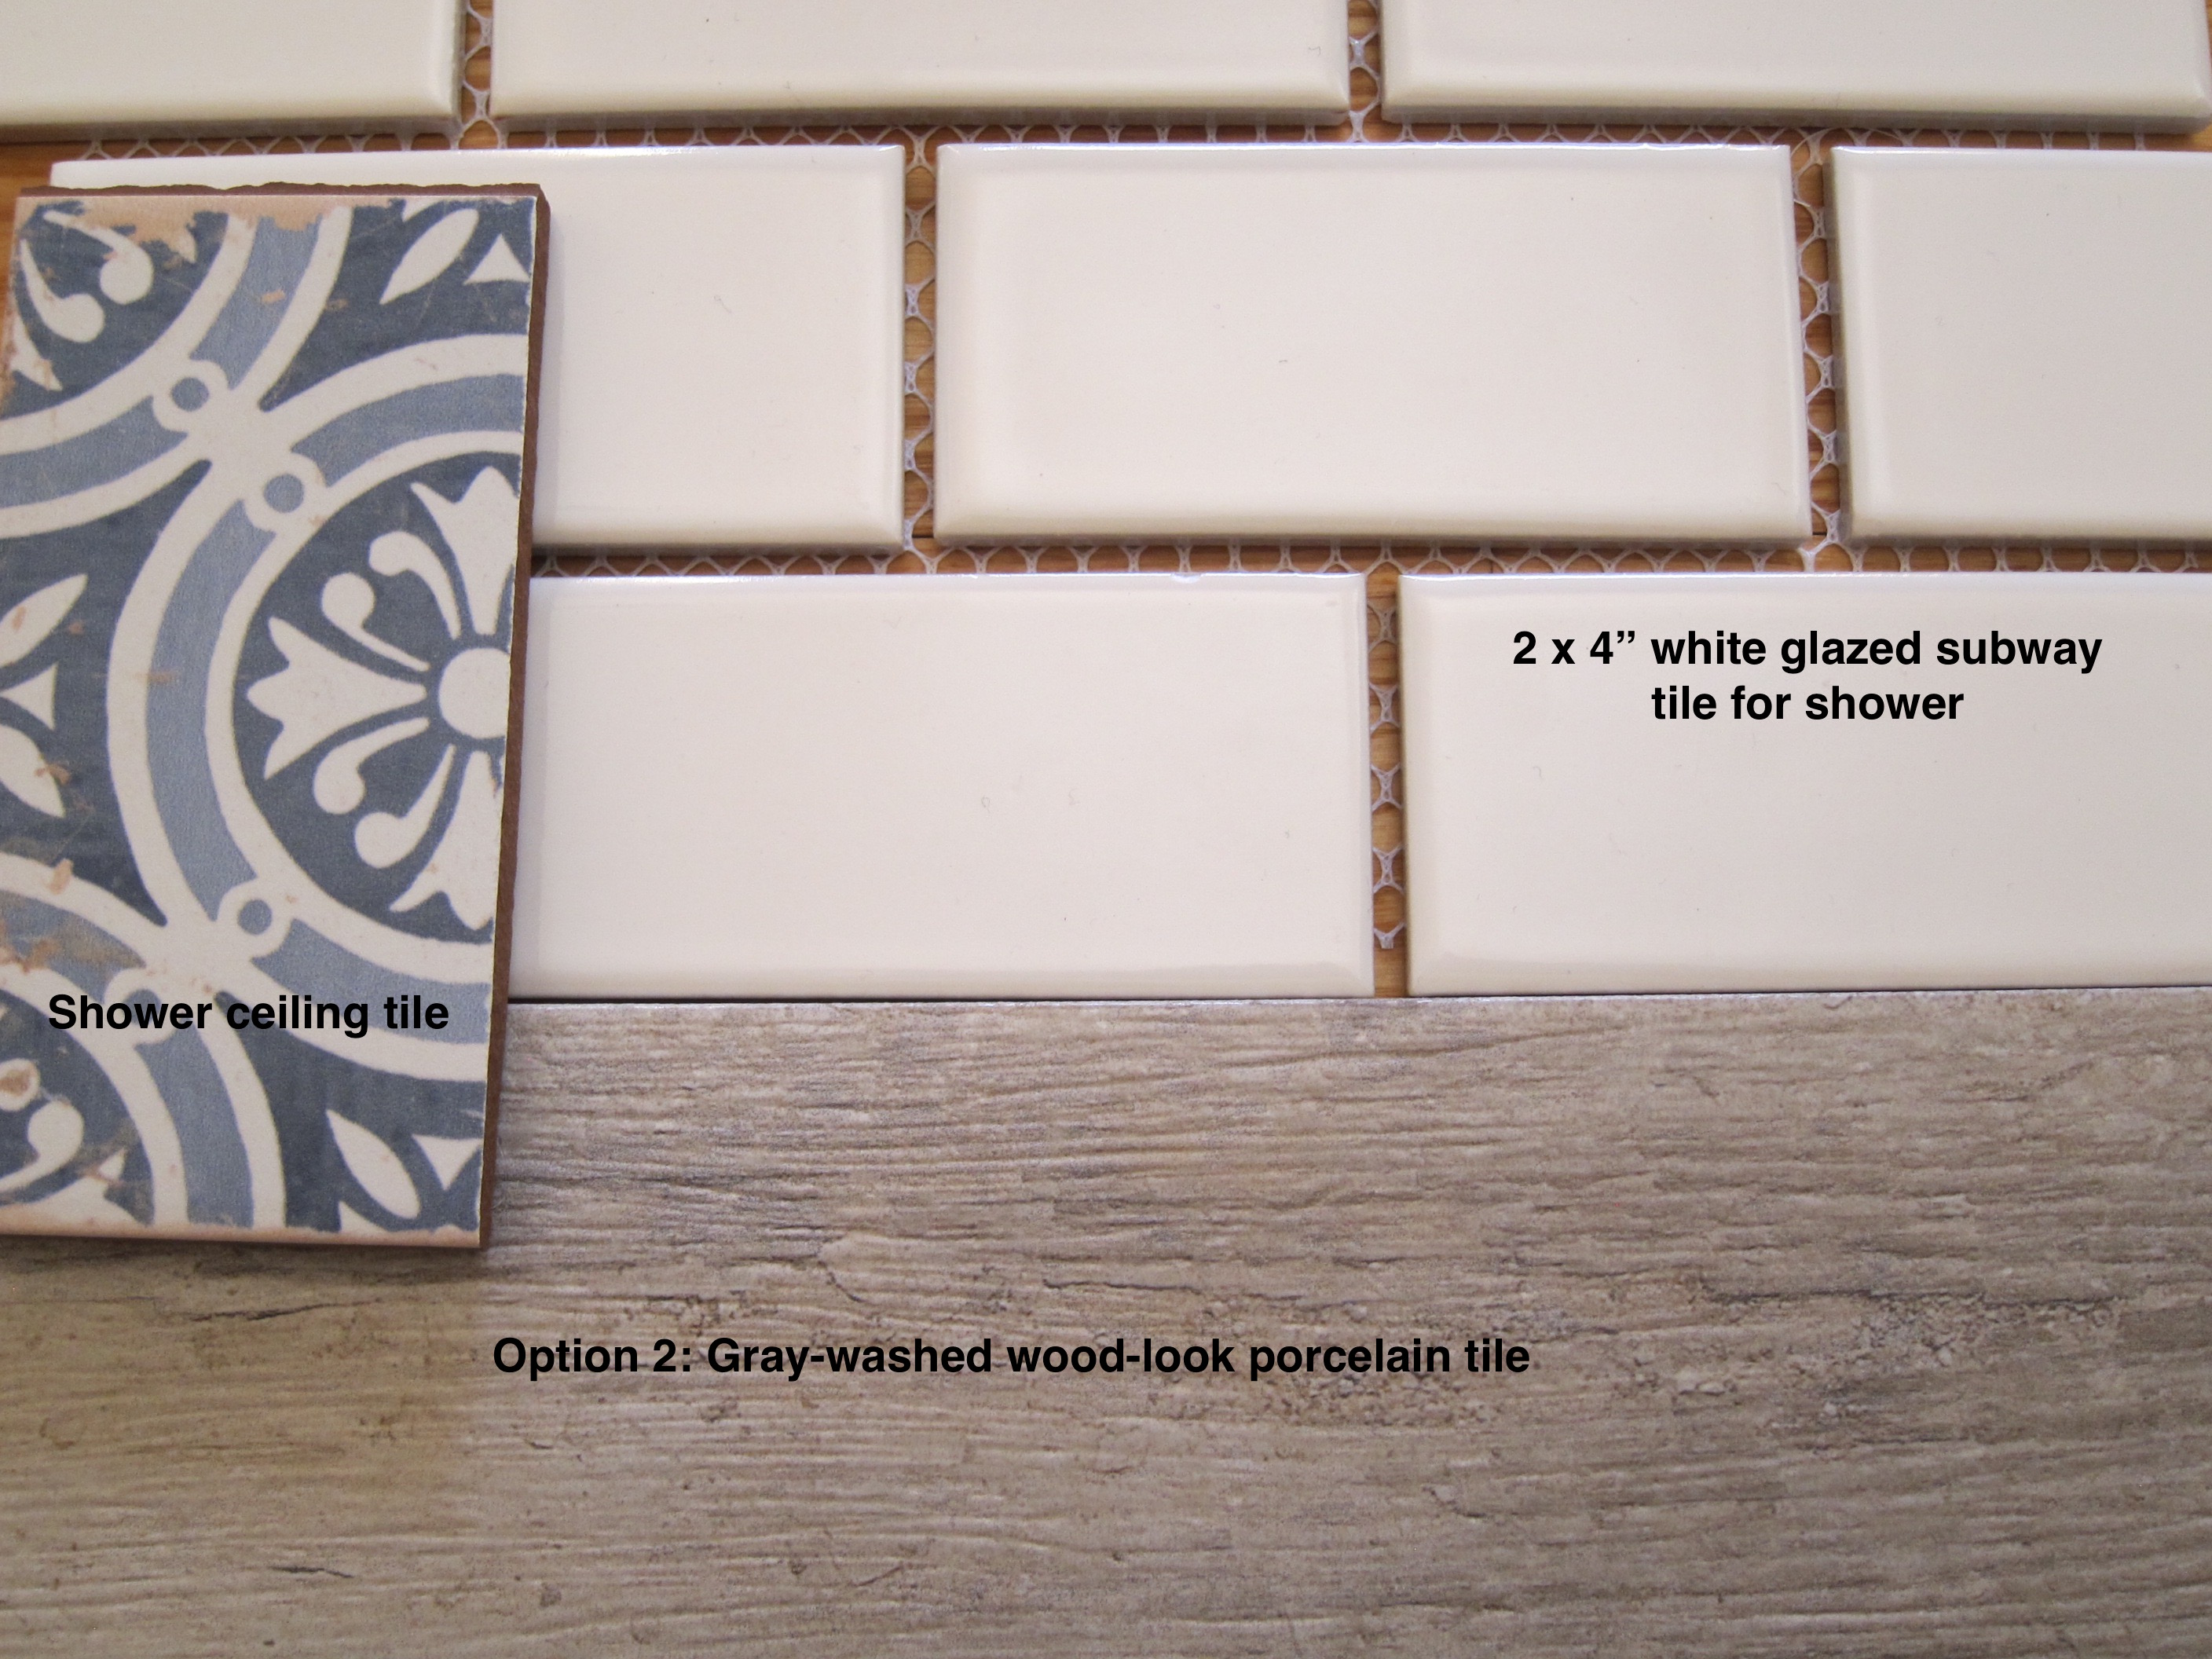 Powder room expansion project atticmag powder room tile options include mediterranean pattern ceiling tile 2 x 4 inch subway dailygadgetfo Gallery